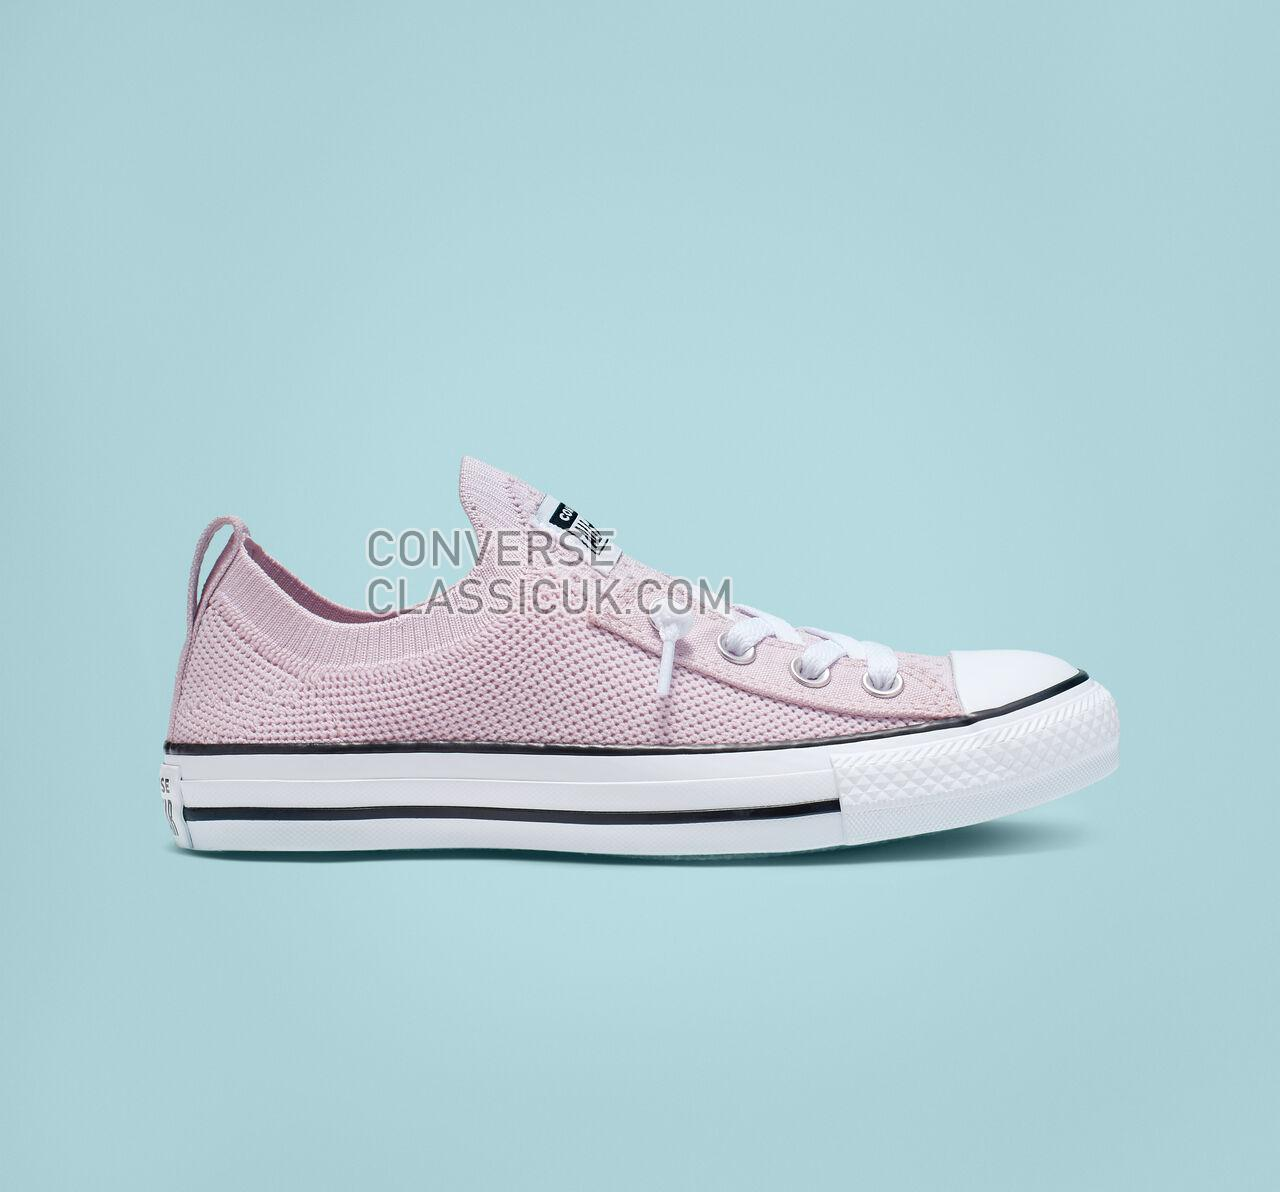 Converse Chuck Taylor All Star Shoreline Knit Slip Womens 565487F Barely Rose/White/Black Shoes